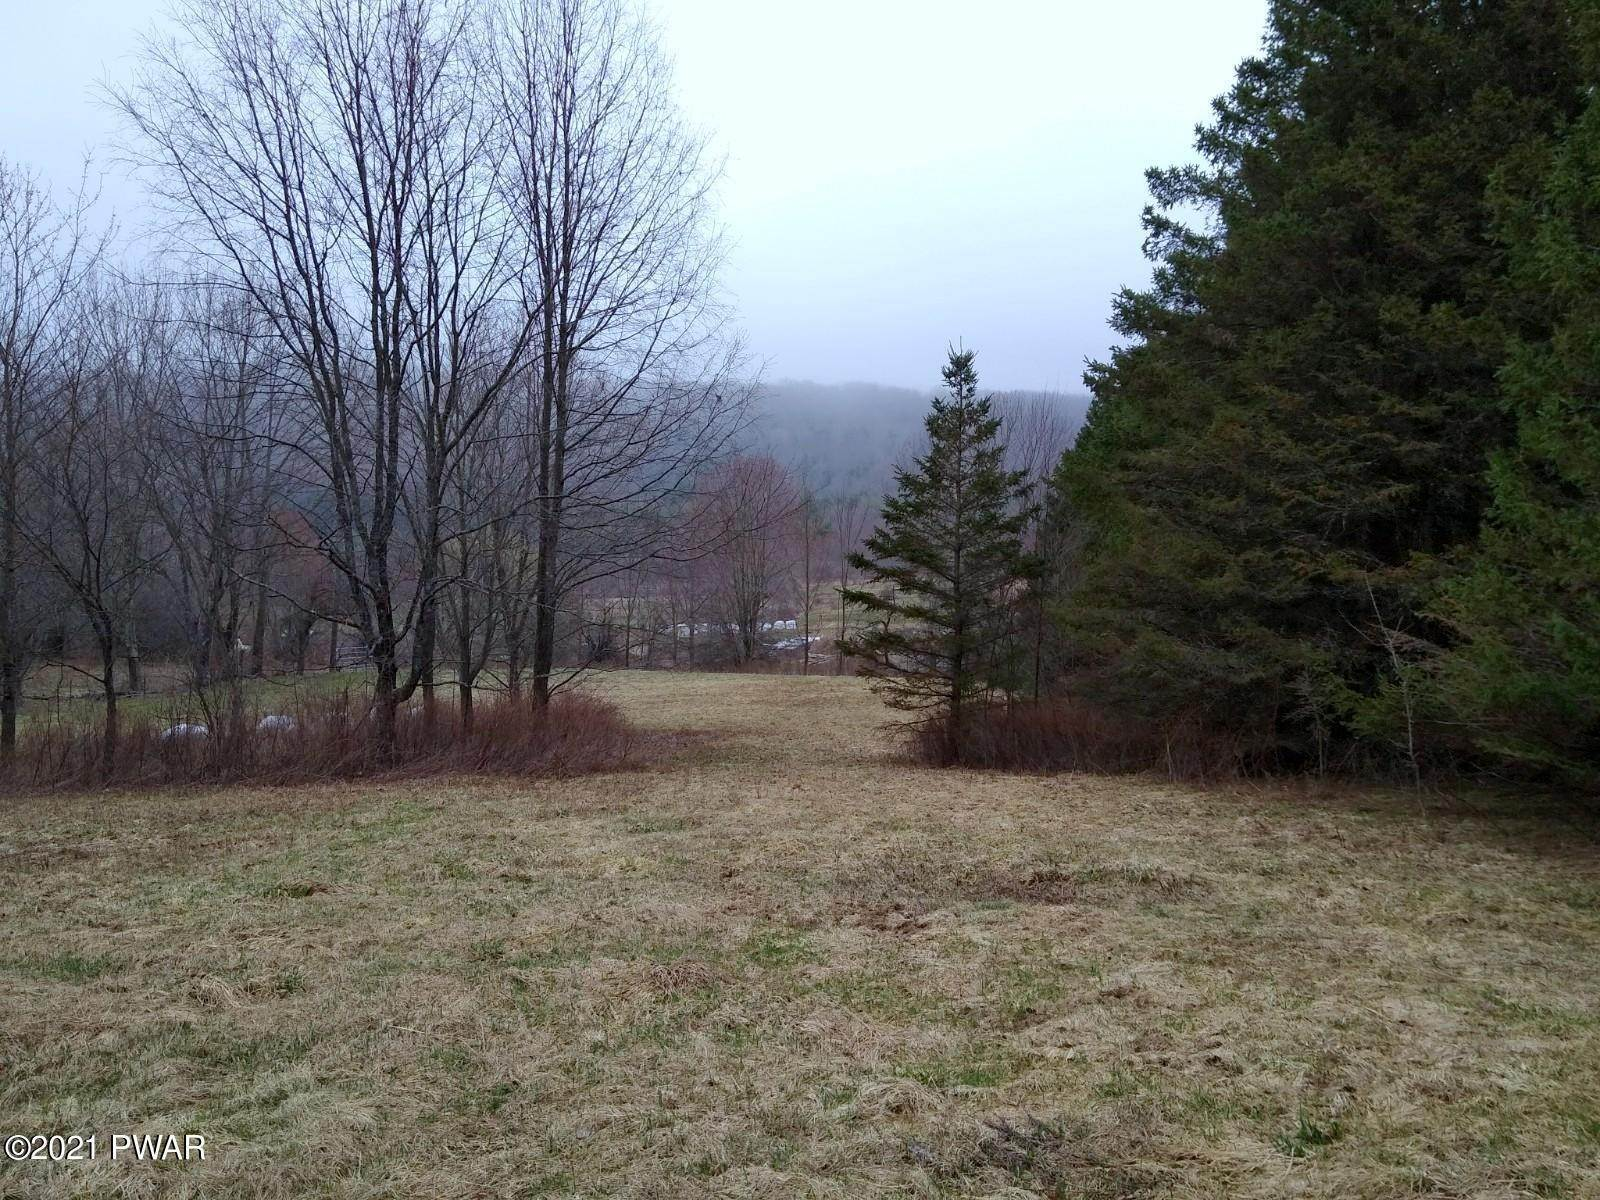 Property for Sale at Scott Center Rd Starrucca, Pennsylvania 18462 United States